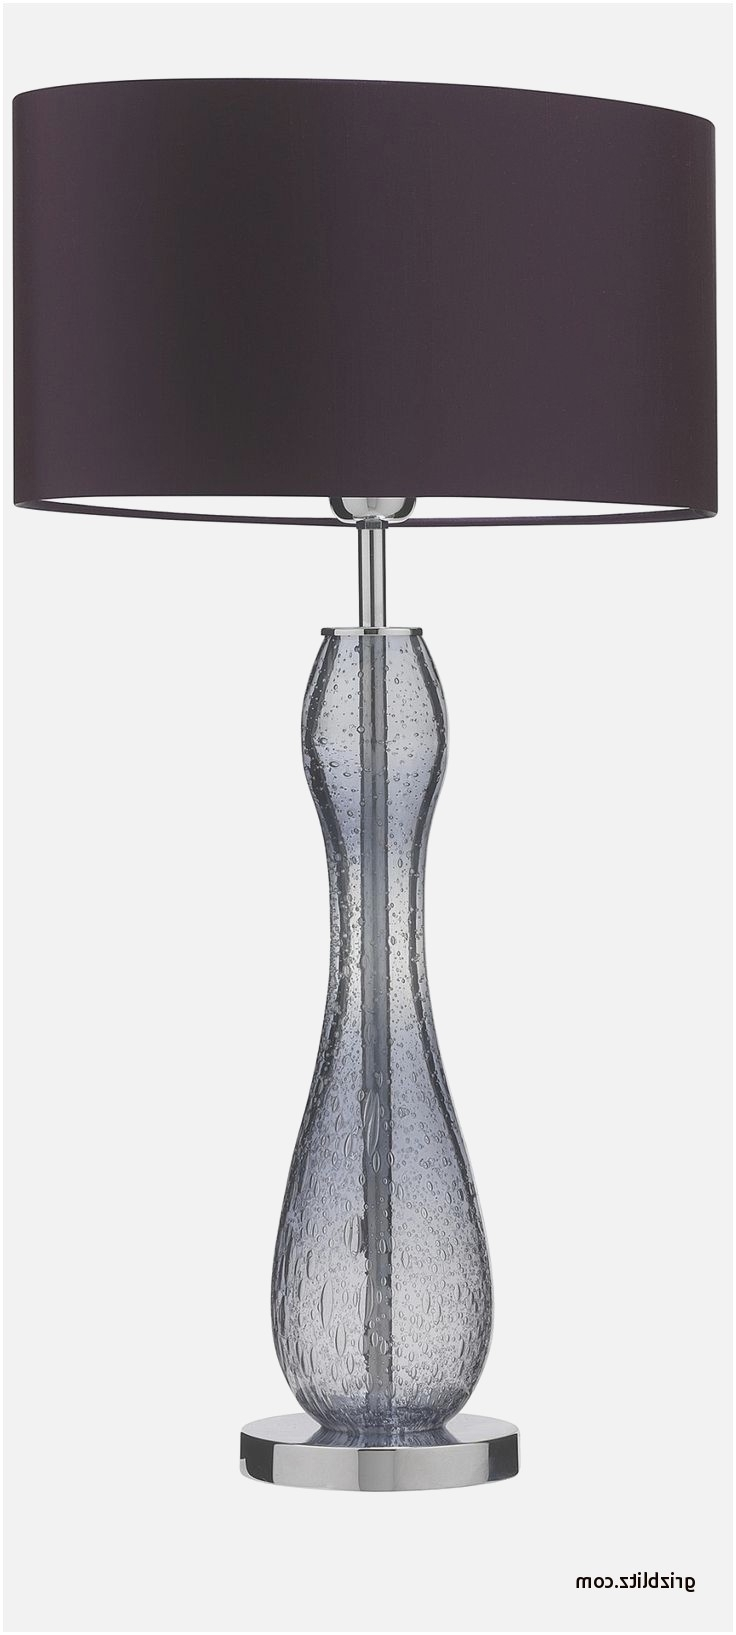 Most Current Living Room Table Lamps At Target Throughout Home Design : Target Com Lamps Best Of Gorgeous Modern Table Lamps (View 11 of 15)